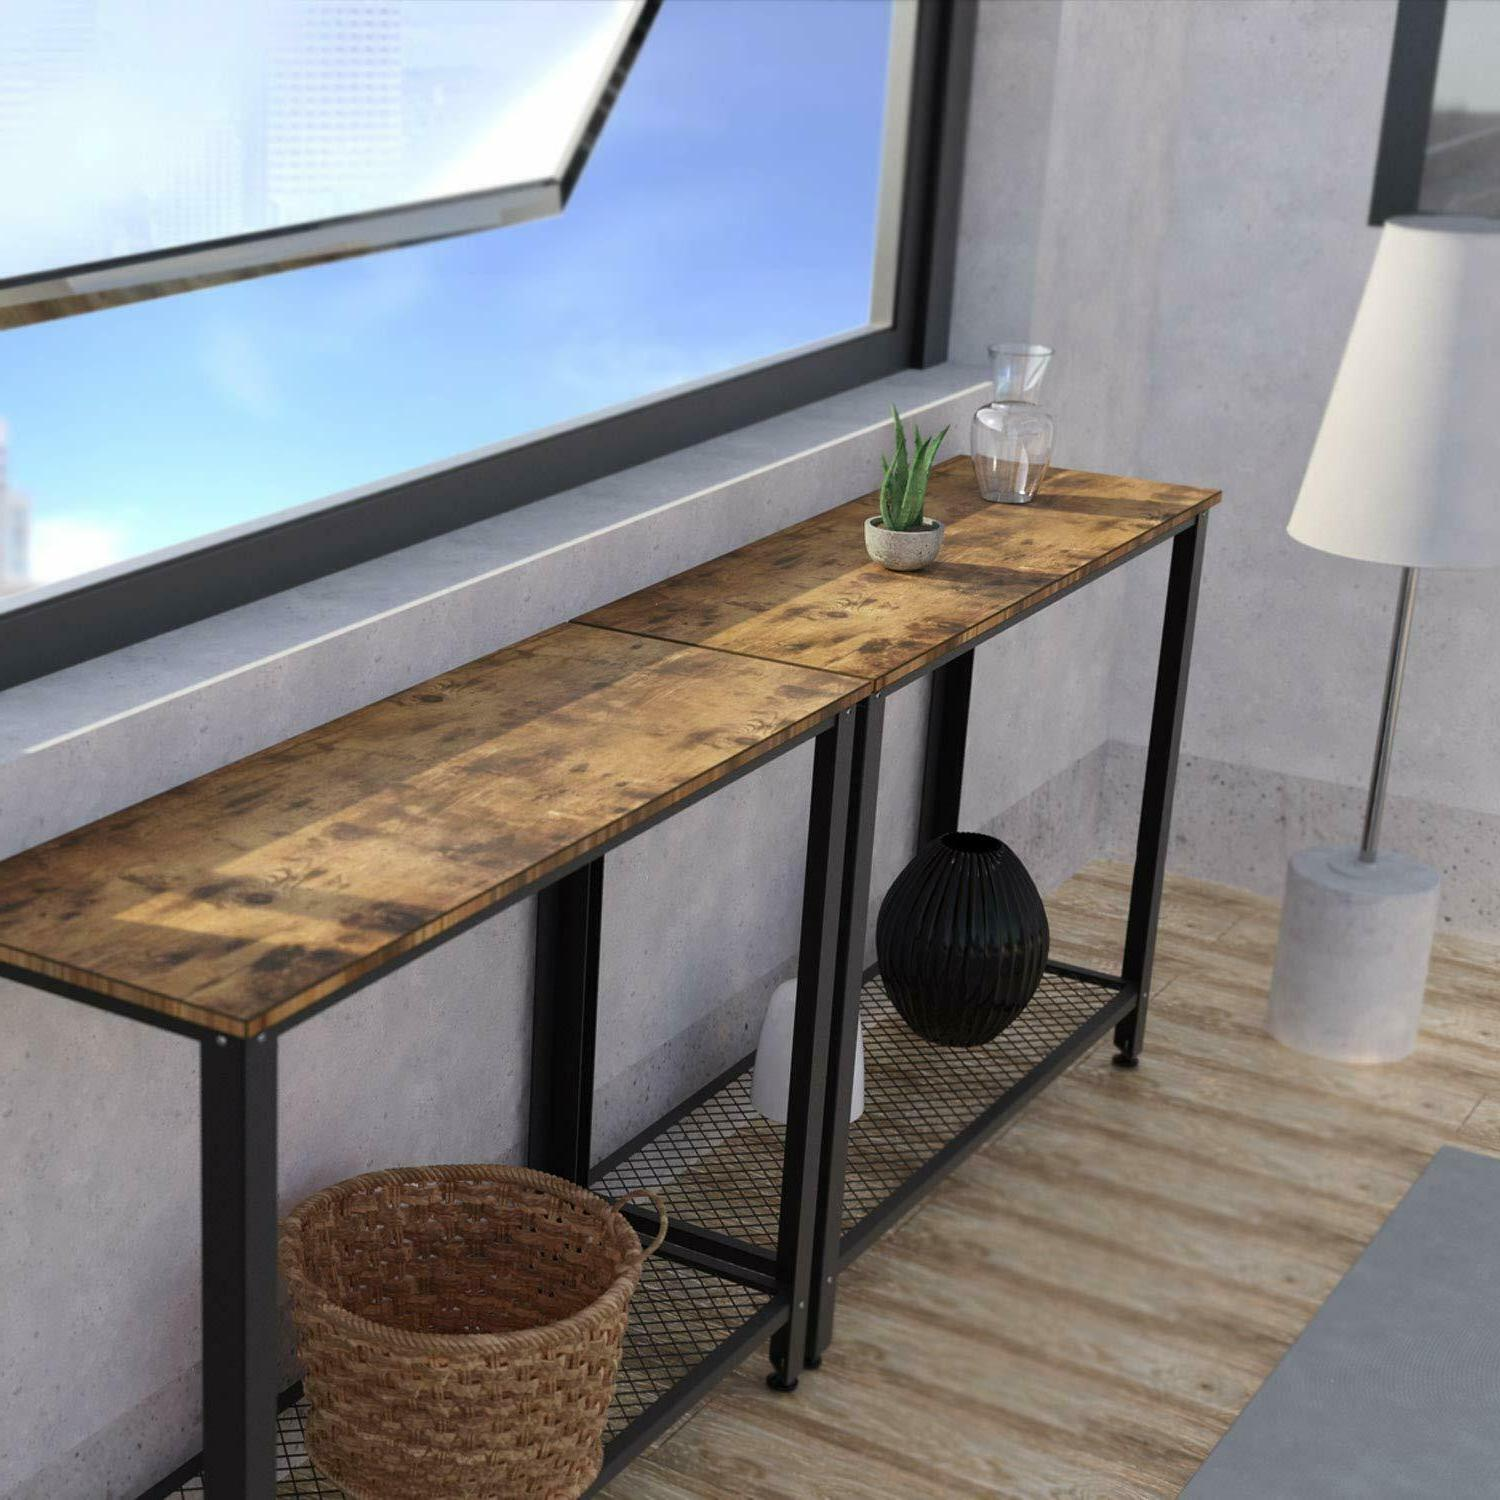 IRONCK Vintage Table for with Shelf Easy